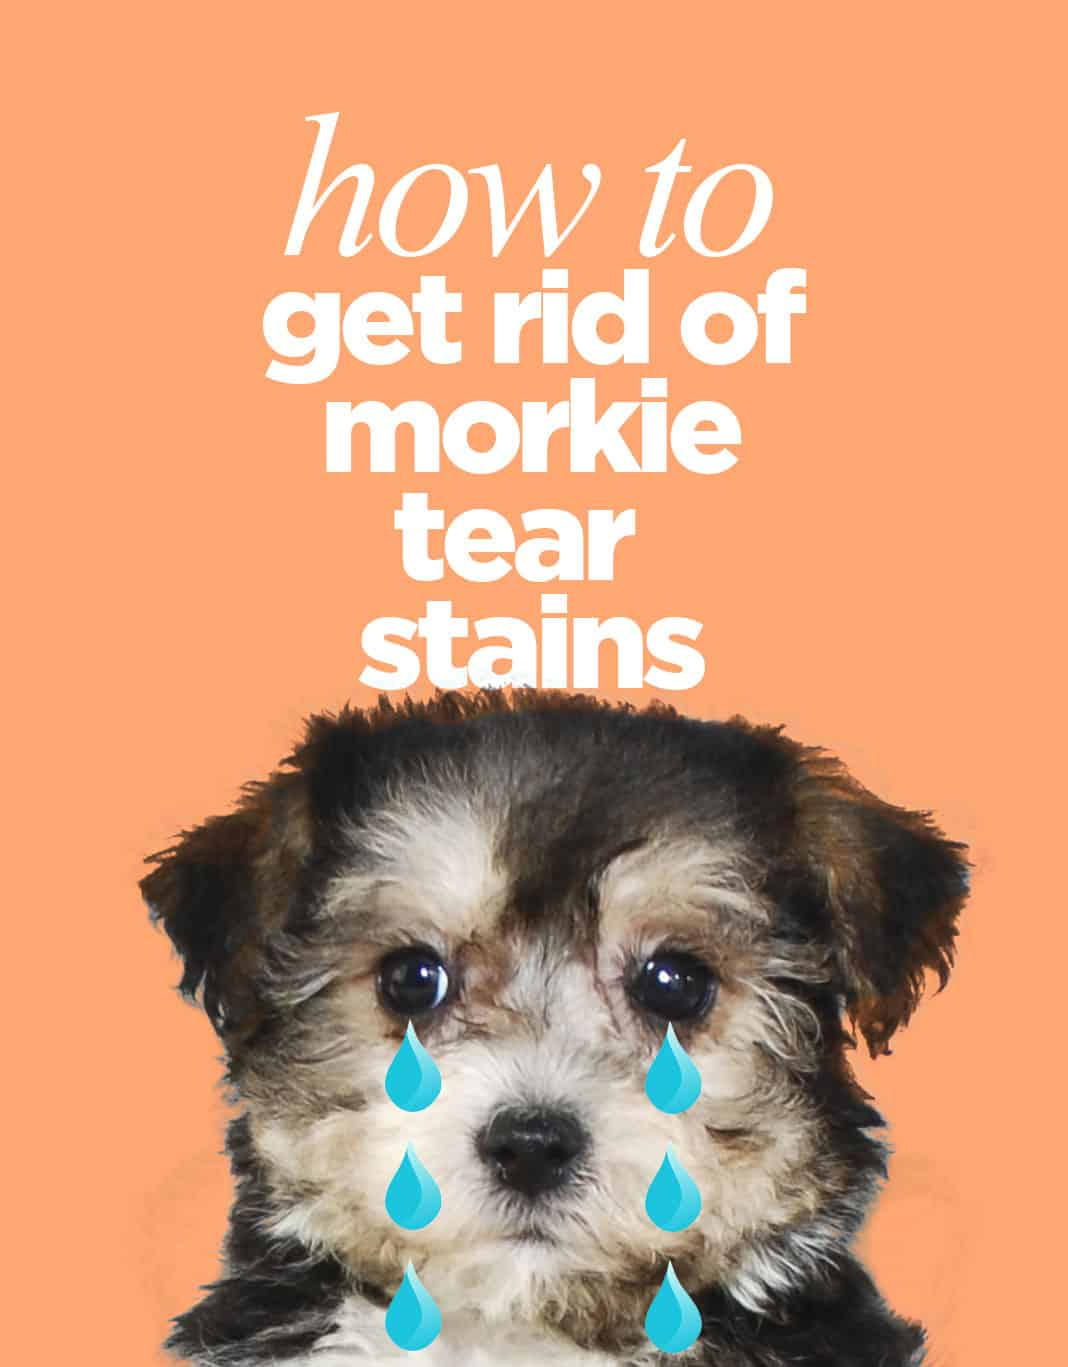 How To Get Rid Of Morkie Tear Stains